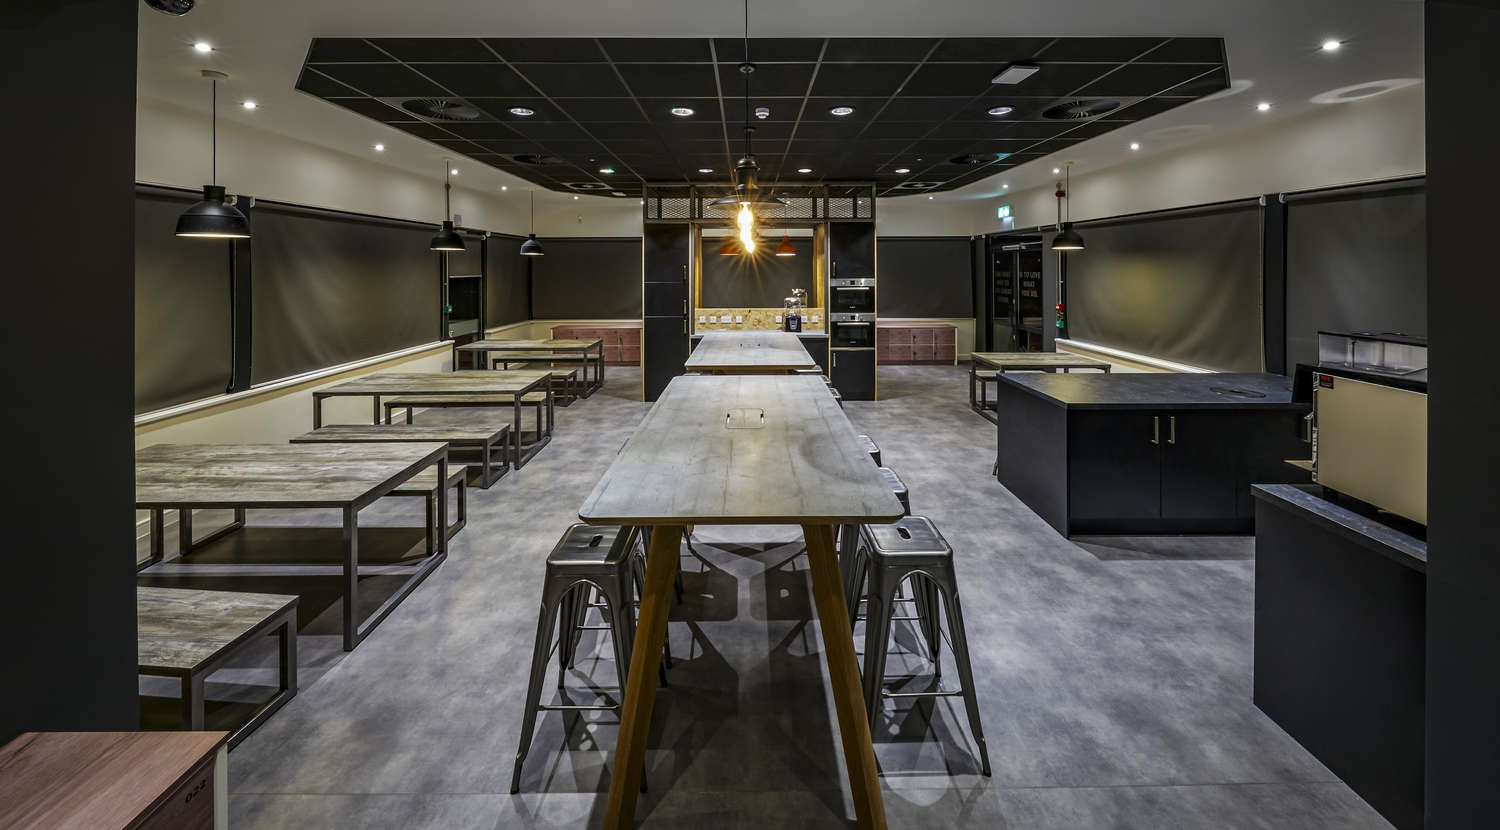 Office fit out with industrial style cafeteria